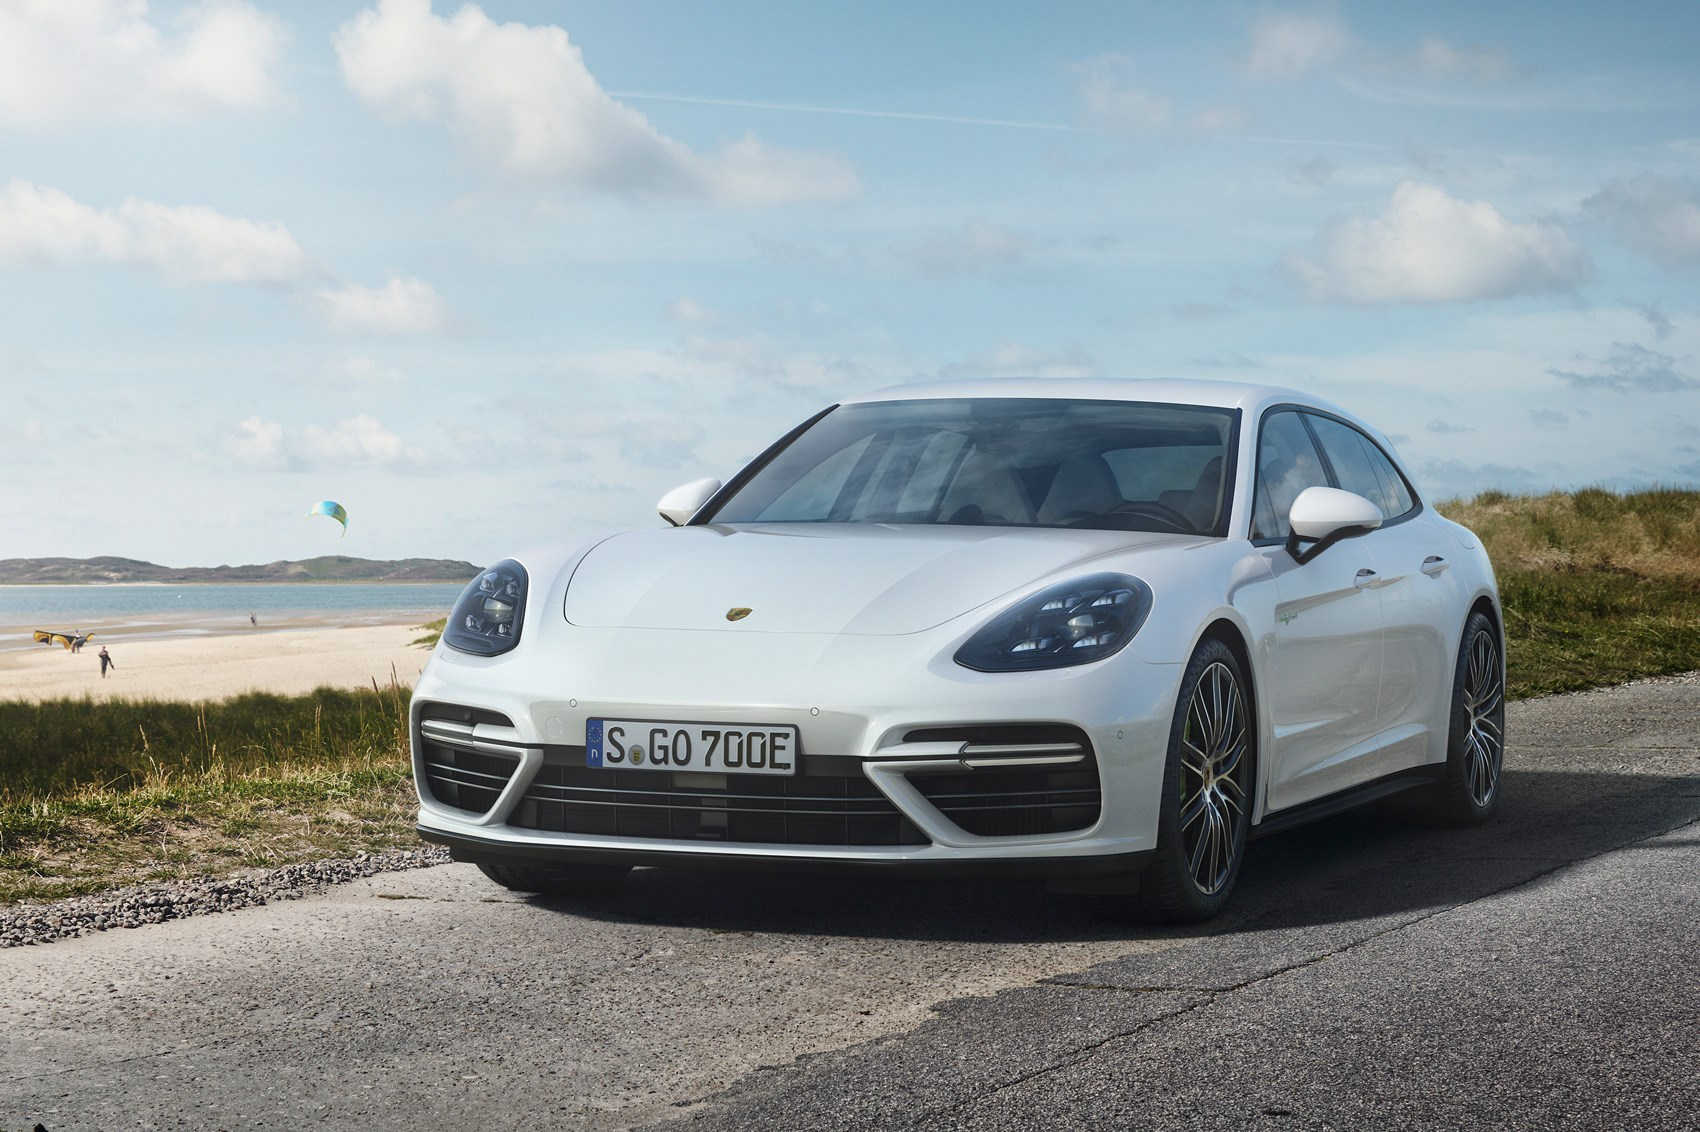 porsche panamera sport turismo turbo s e hybrid bows in by car magazine. Black Bedroom Furniture Sets. Home Design Ideas